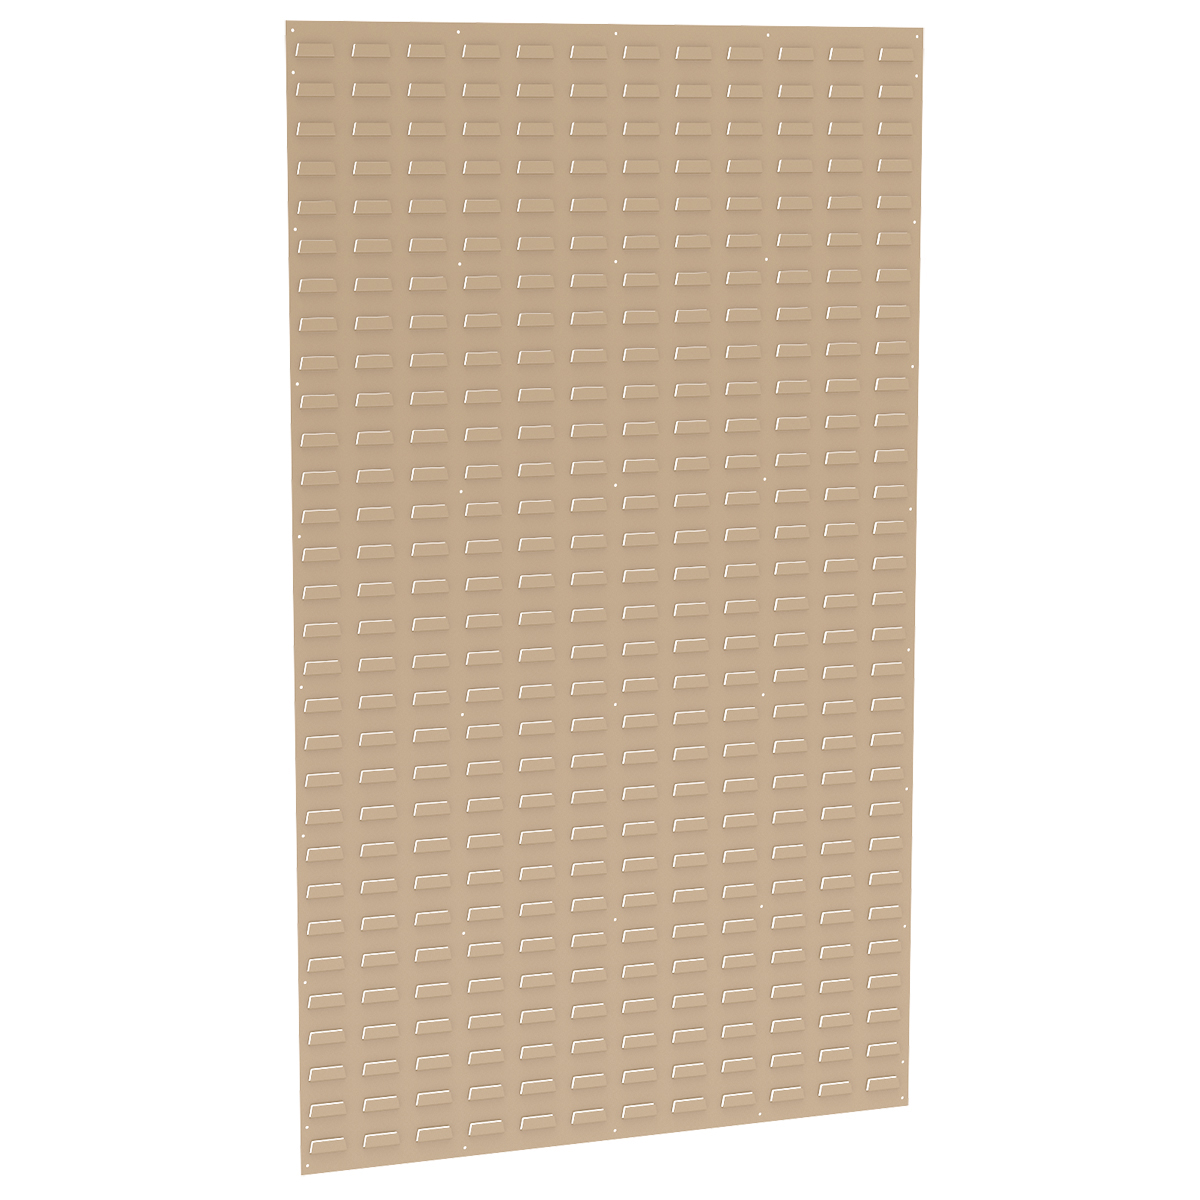 Louvered Wall Panel, 36 x 61, Beige (30161BEIGE).  This item sold in carton quantities of 1.